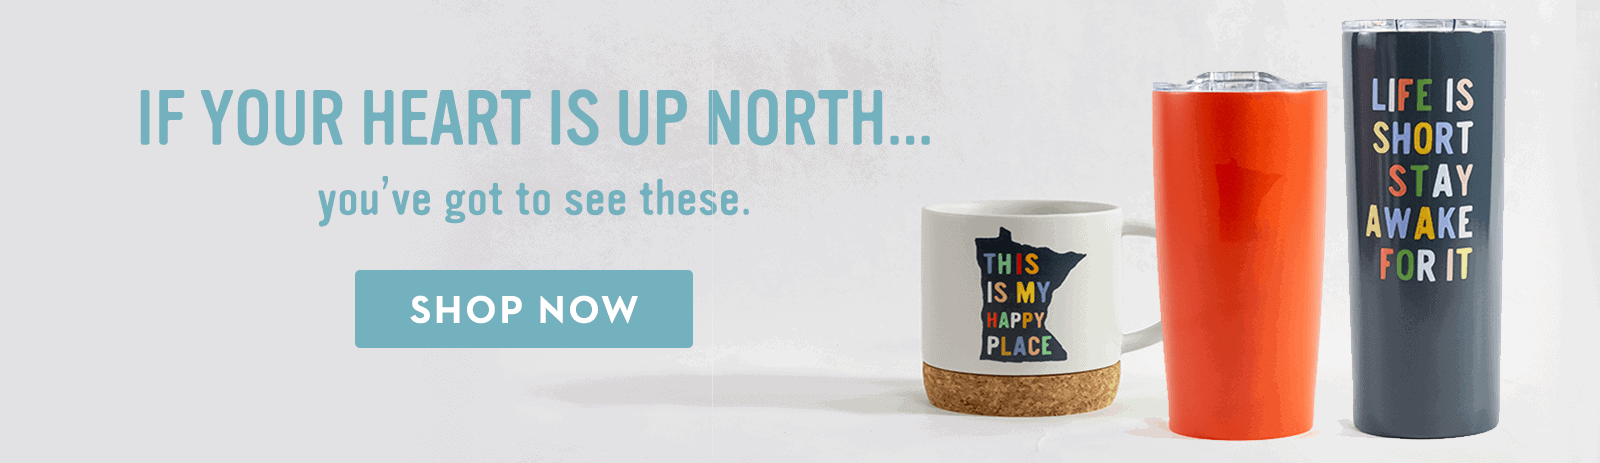 Caribou Coffee Spring if your heart is up north merchandise banner